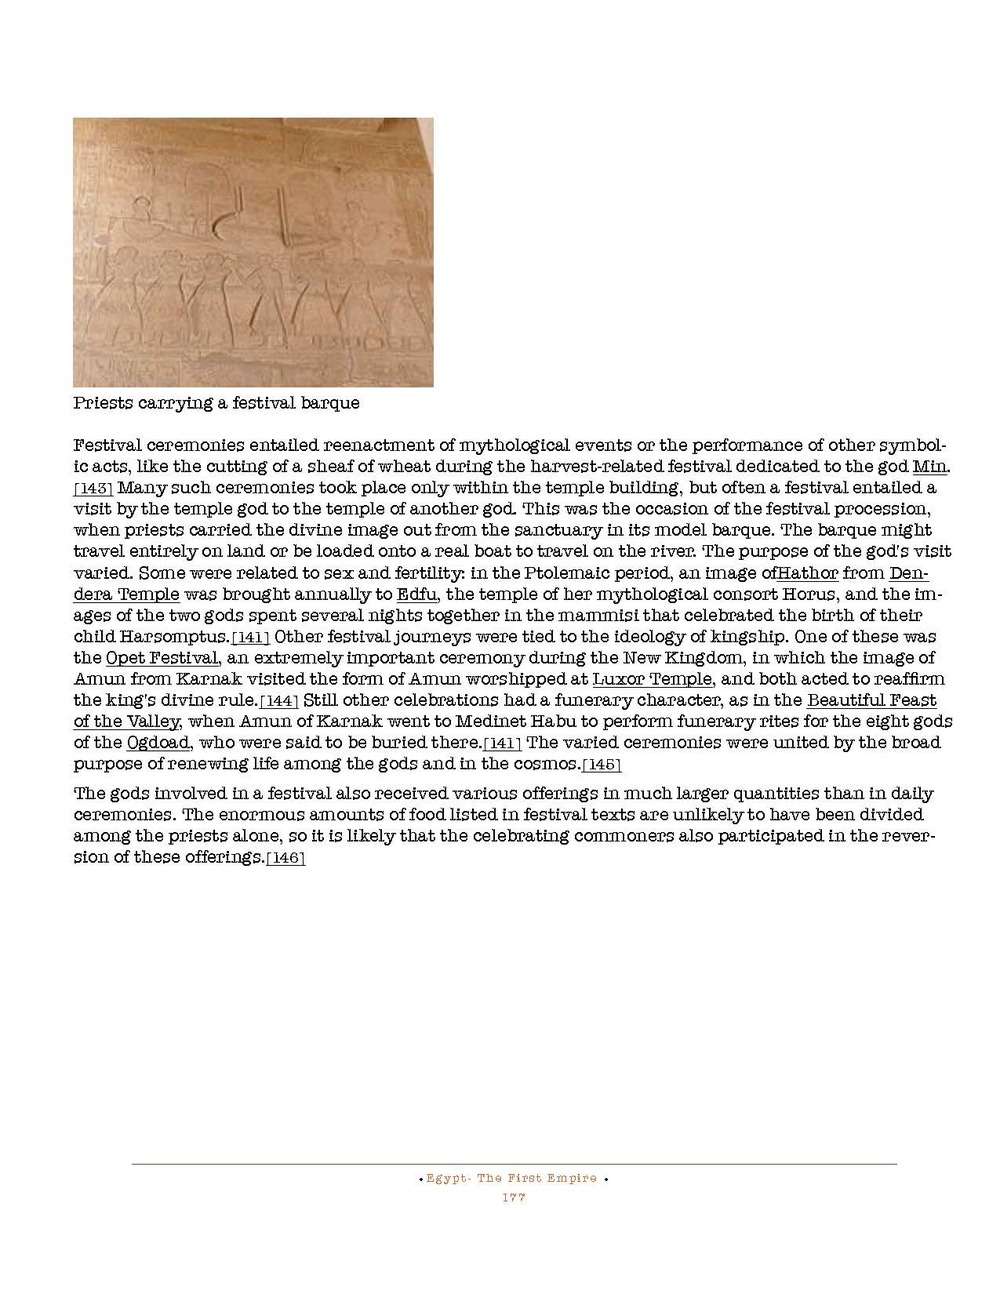 HOCE- Egypt  (First Empire) Notes_Page_177.jpg